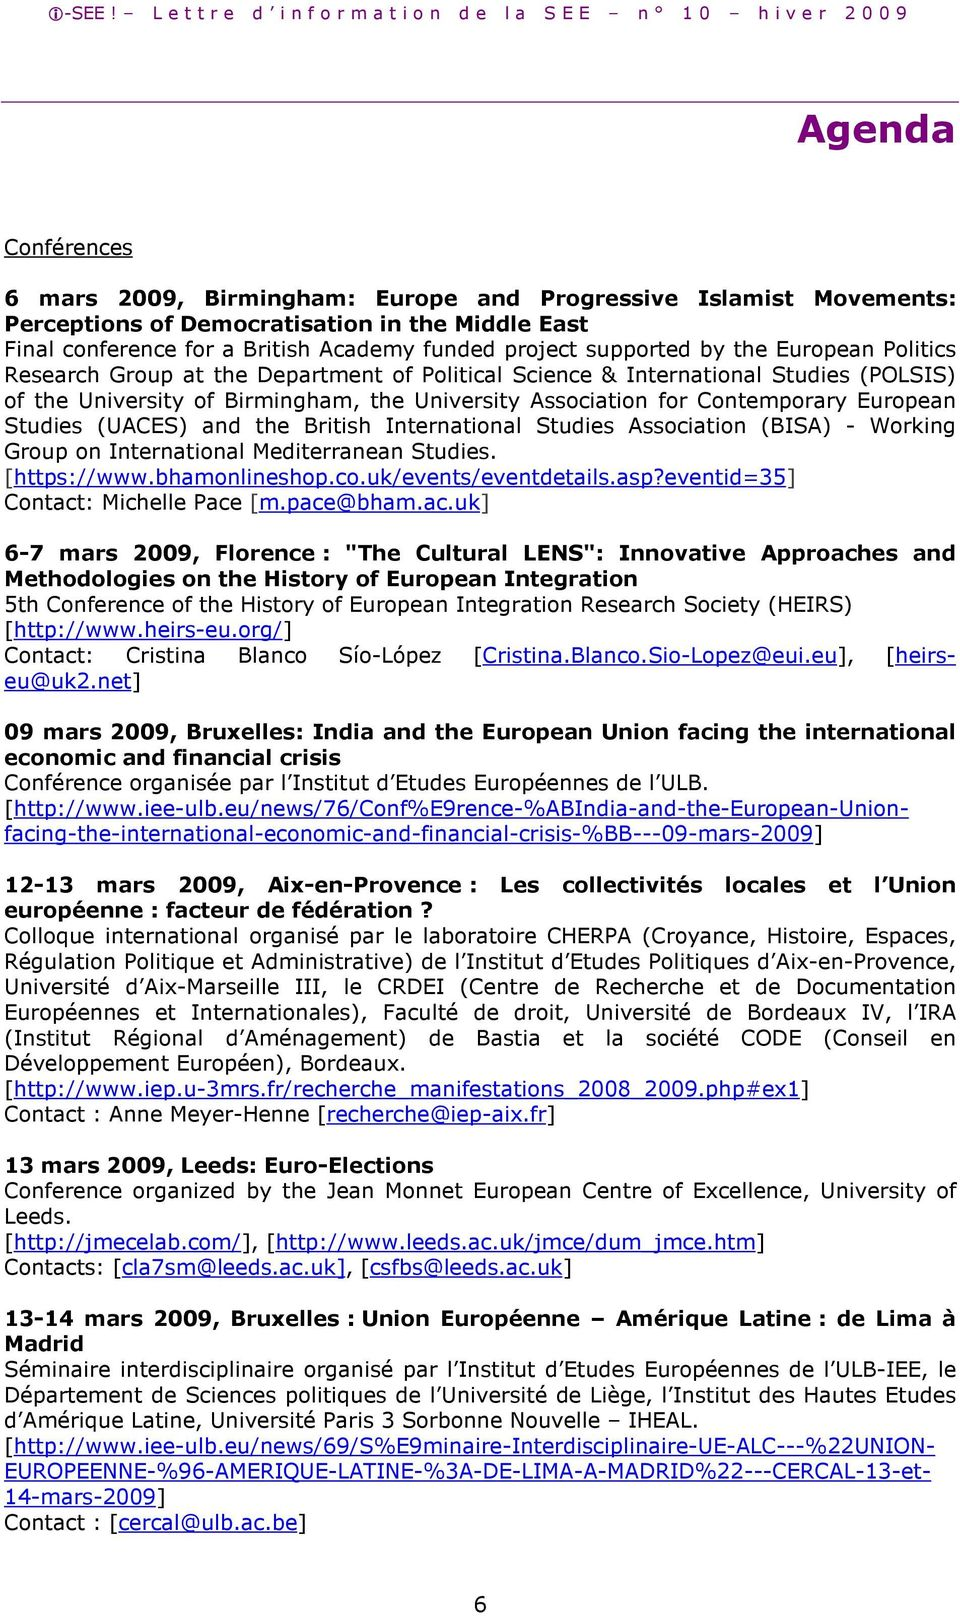 European Studies (UACES) and the British International Studies Association (BISA) - Working Group on International Mediterranean Studies. [https://www.bhamonlineshop.co.uk/events/eventdetails.asp?